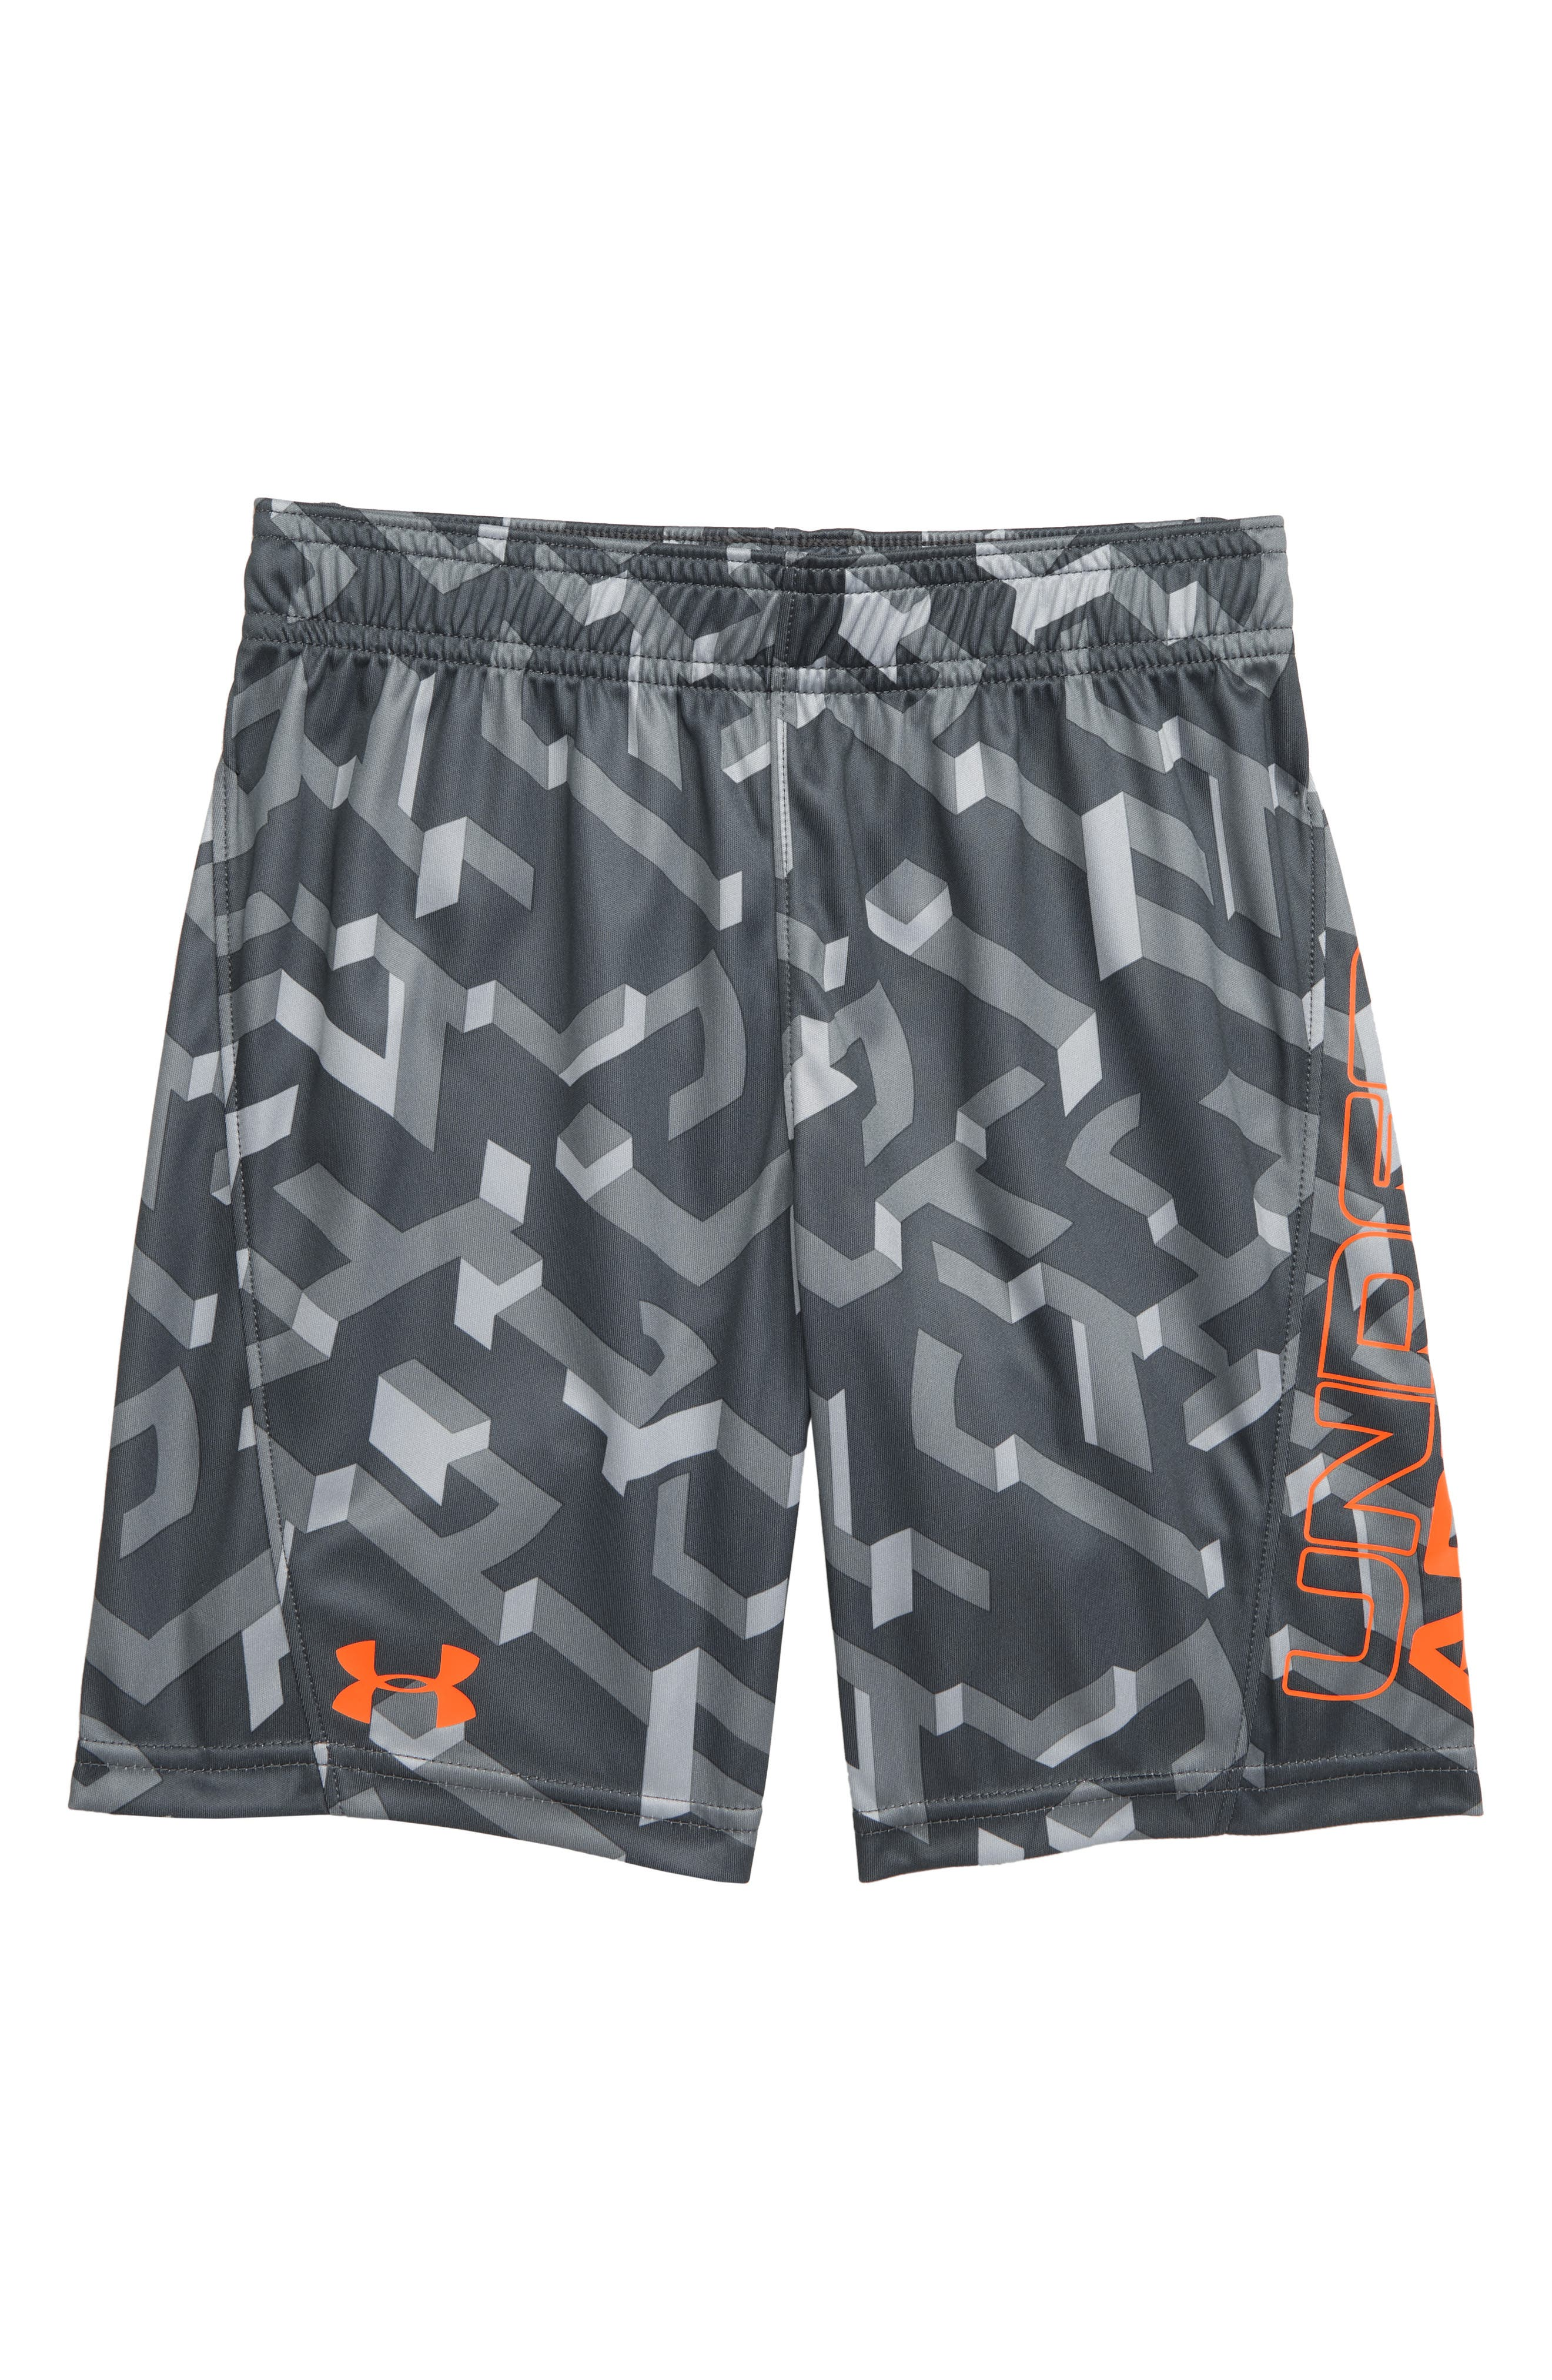 UNDER ARMOUR, Knockout Boost HeatGear<sup>®</sup> Shorts, Main thumbnail 1, color, 050